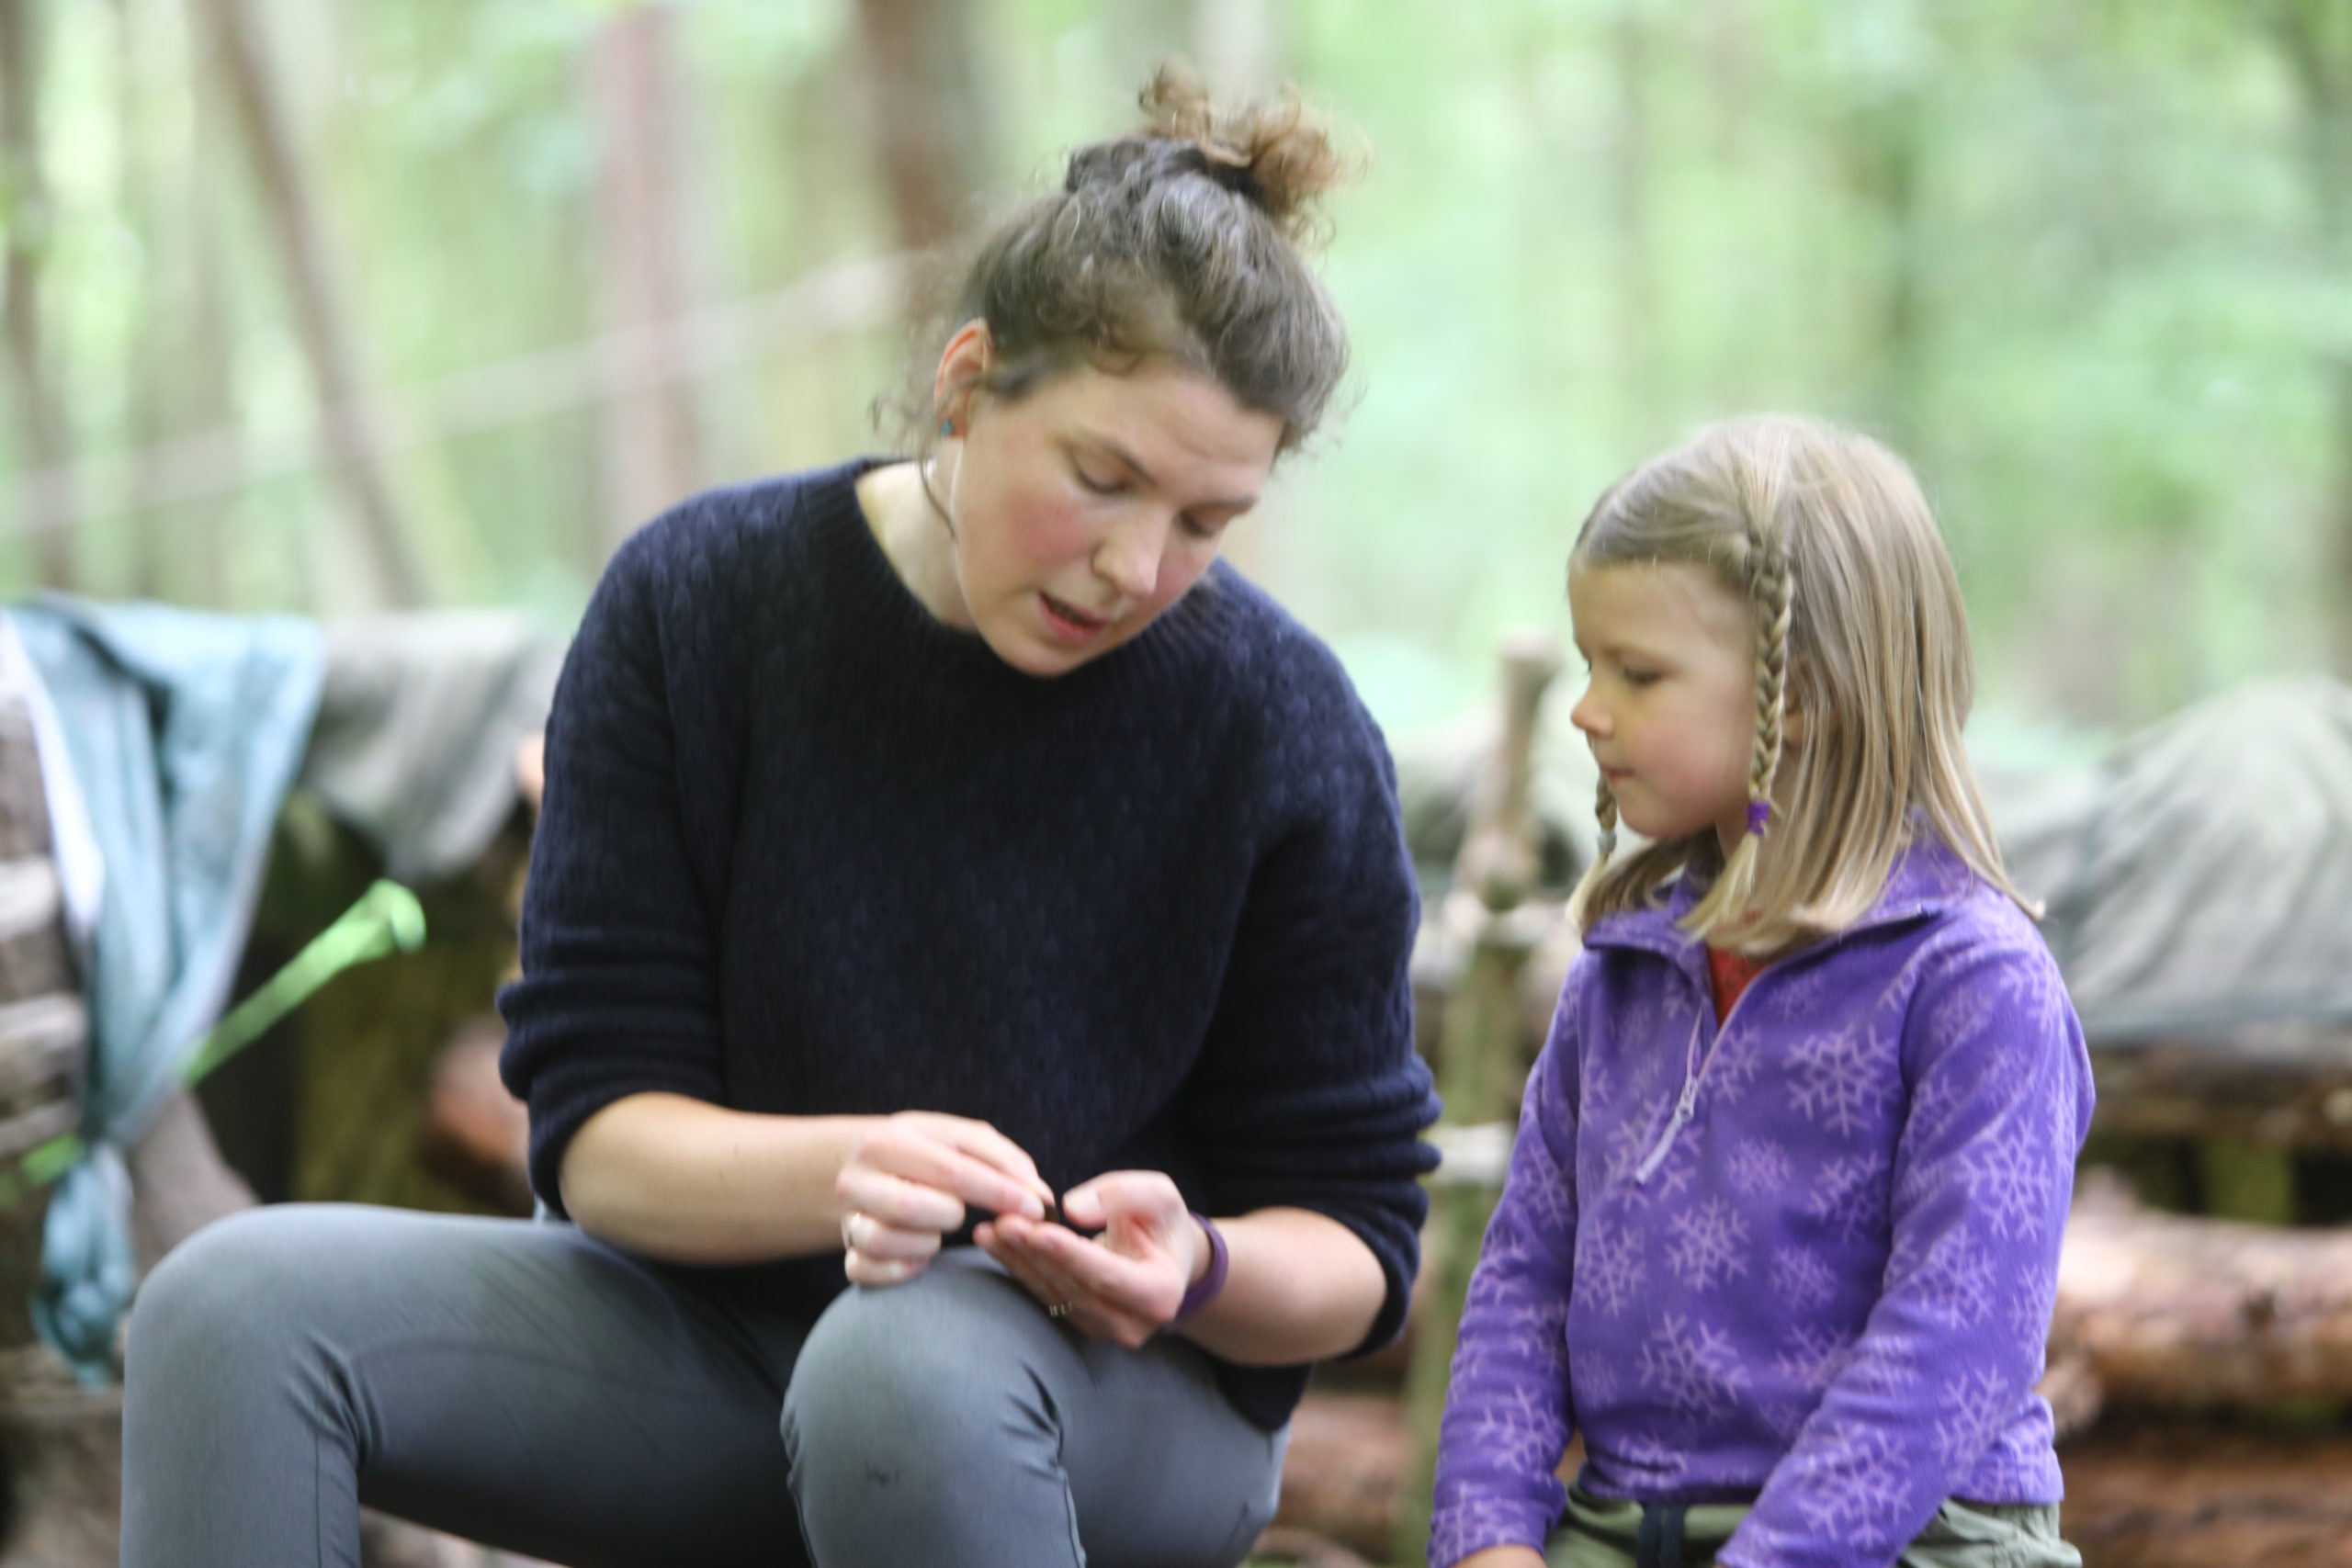 Sarah Latto - Manager chatting with one of the kids, at the Secret Garden Outdoor Nursery, near Letham in Fife.